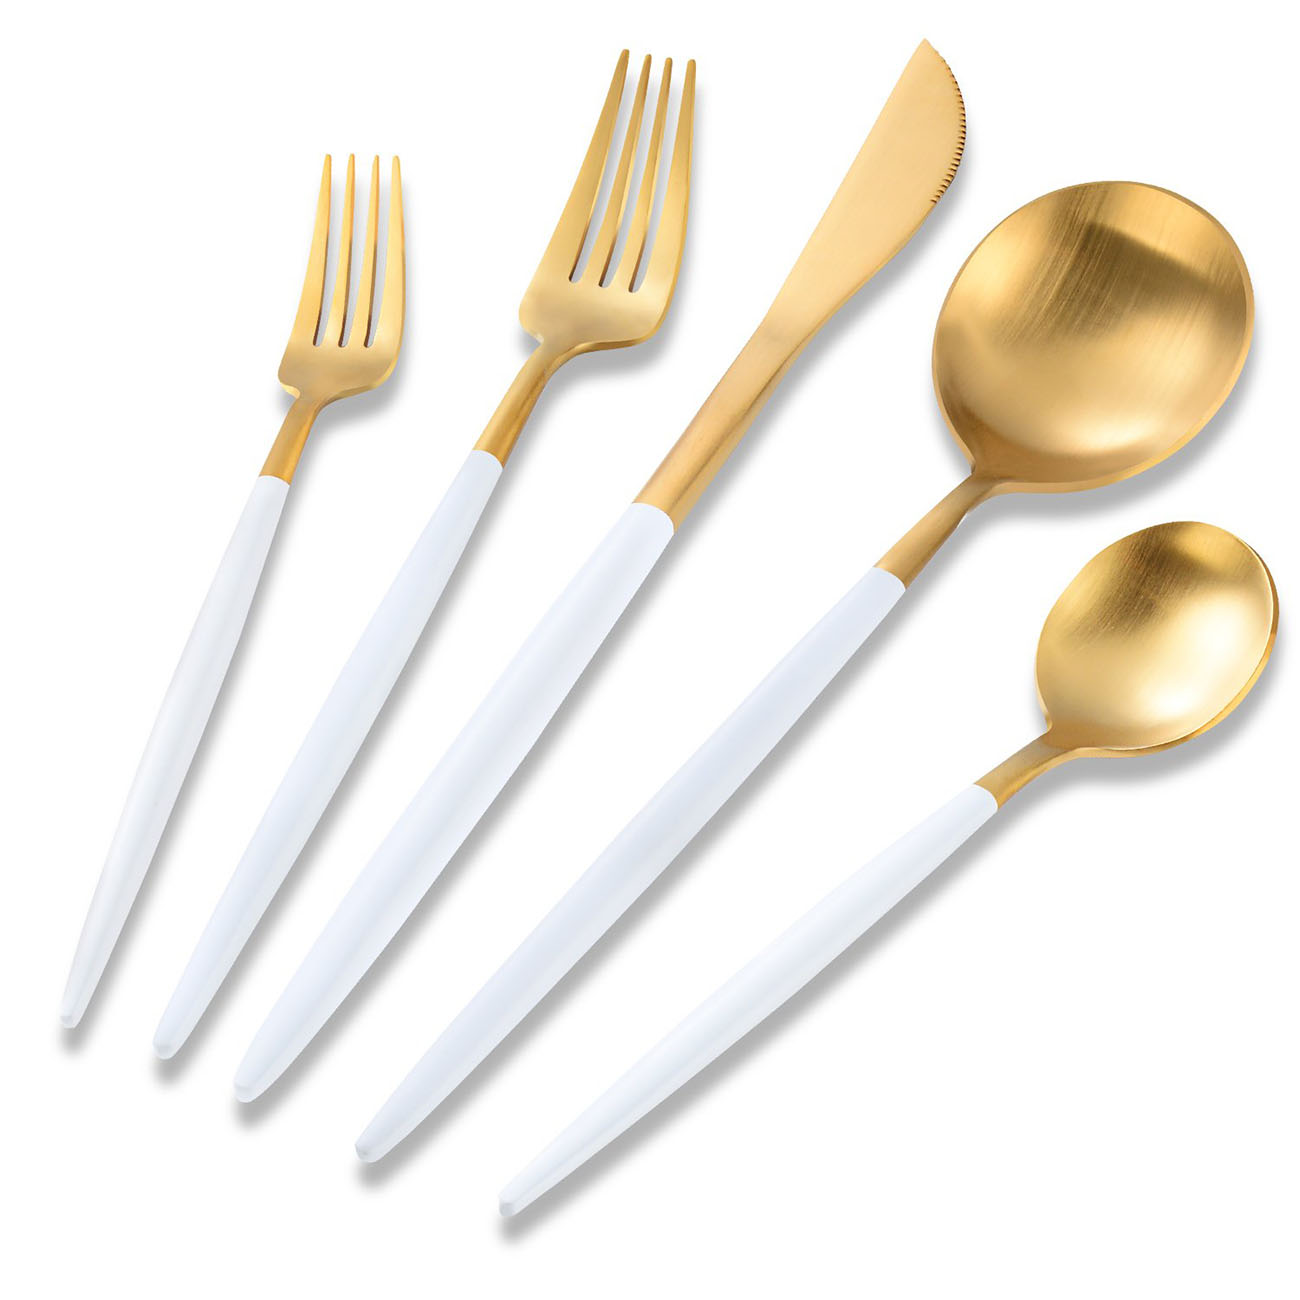 Flatwar Silverware Set White and Matte Gold